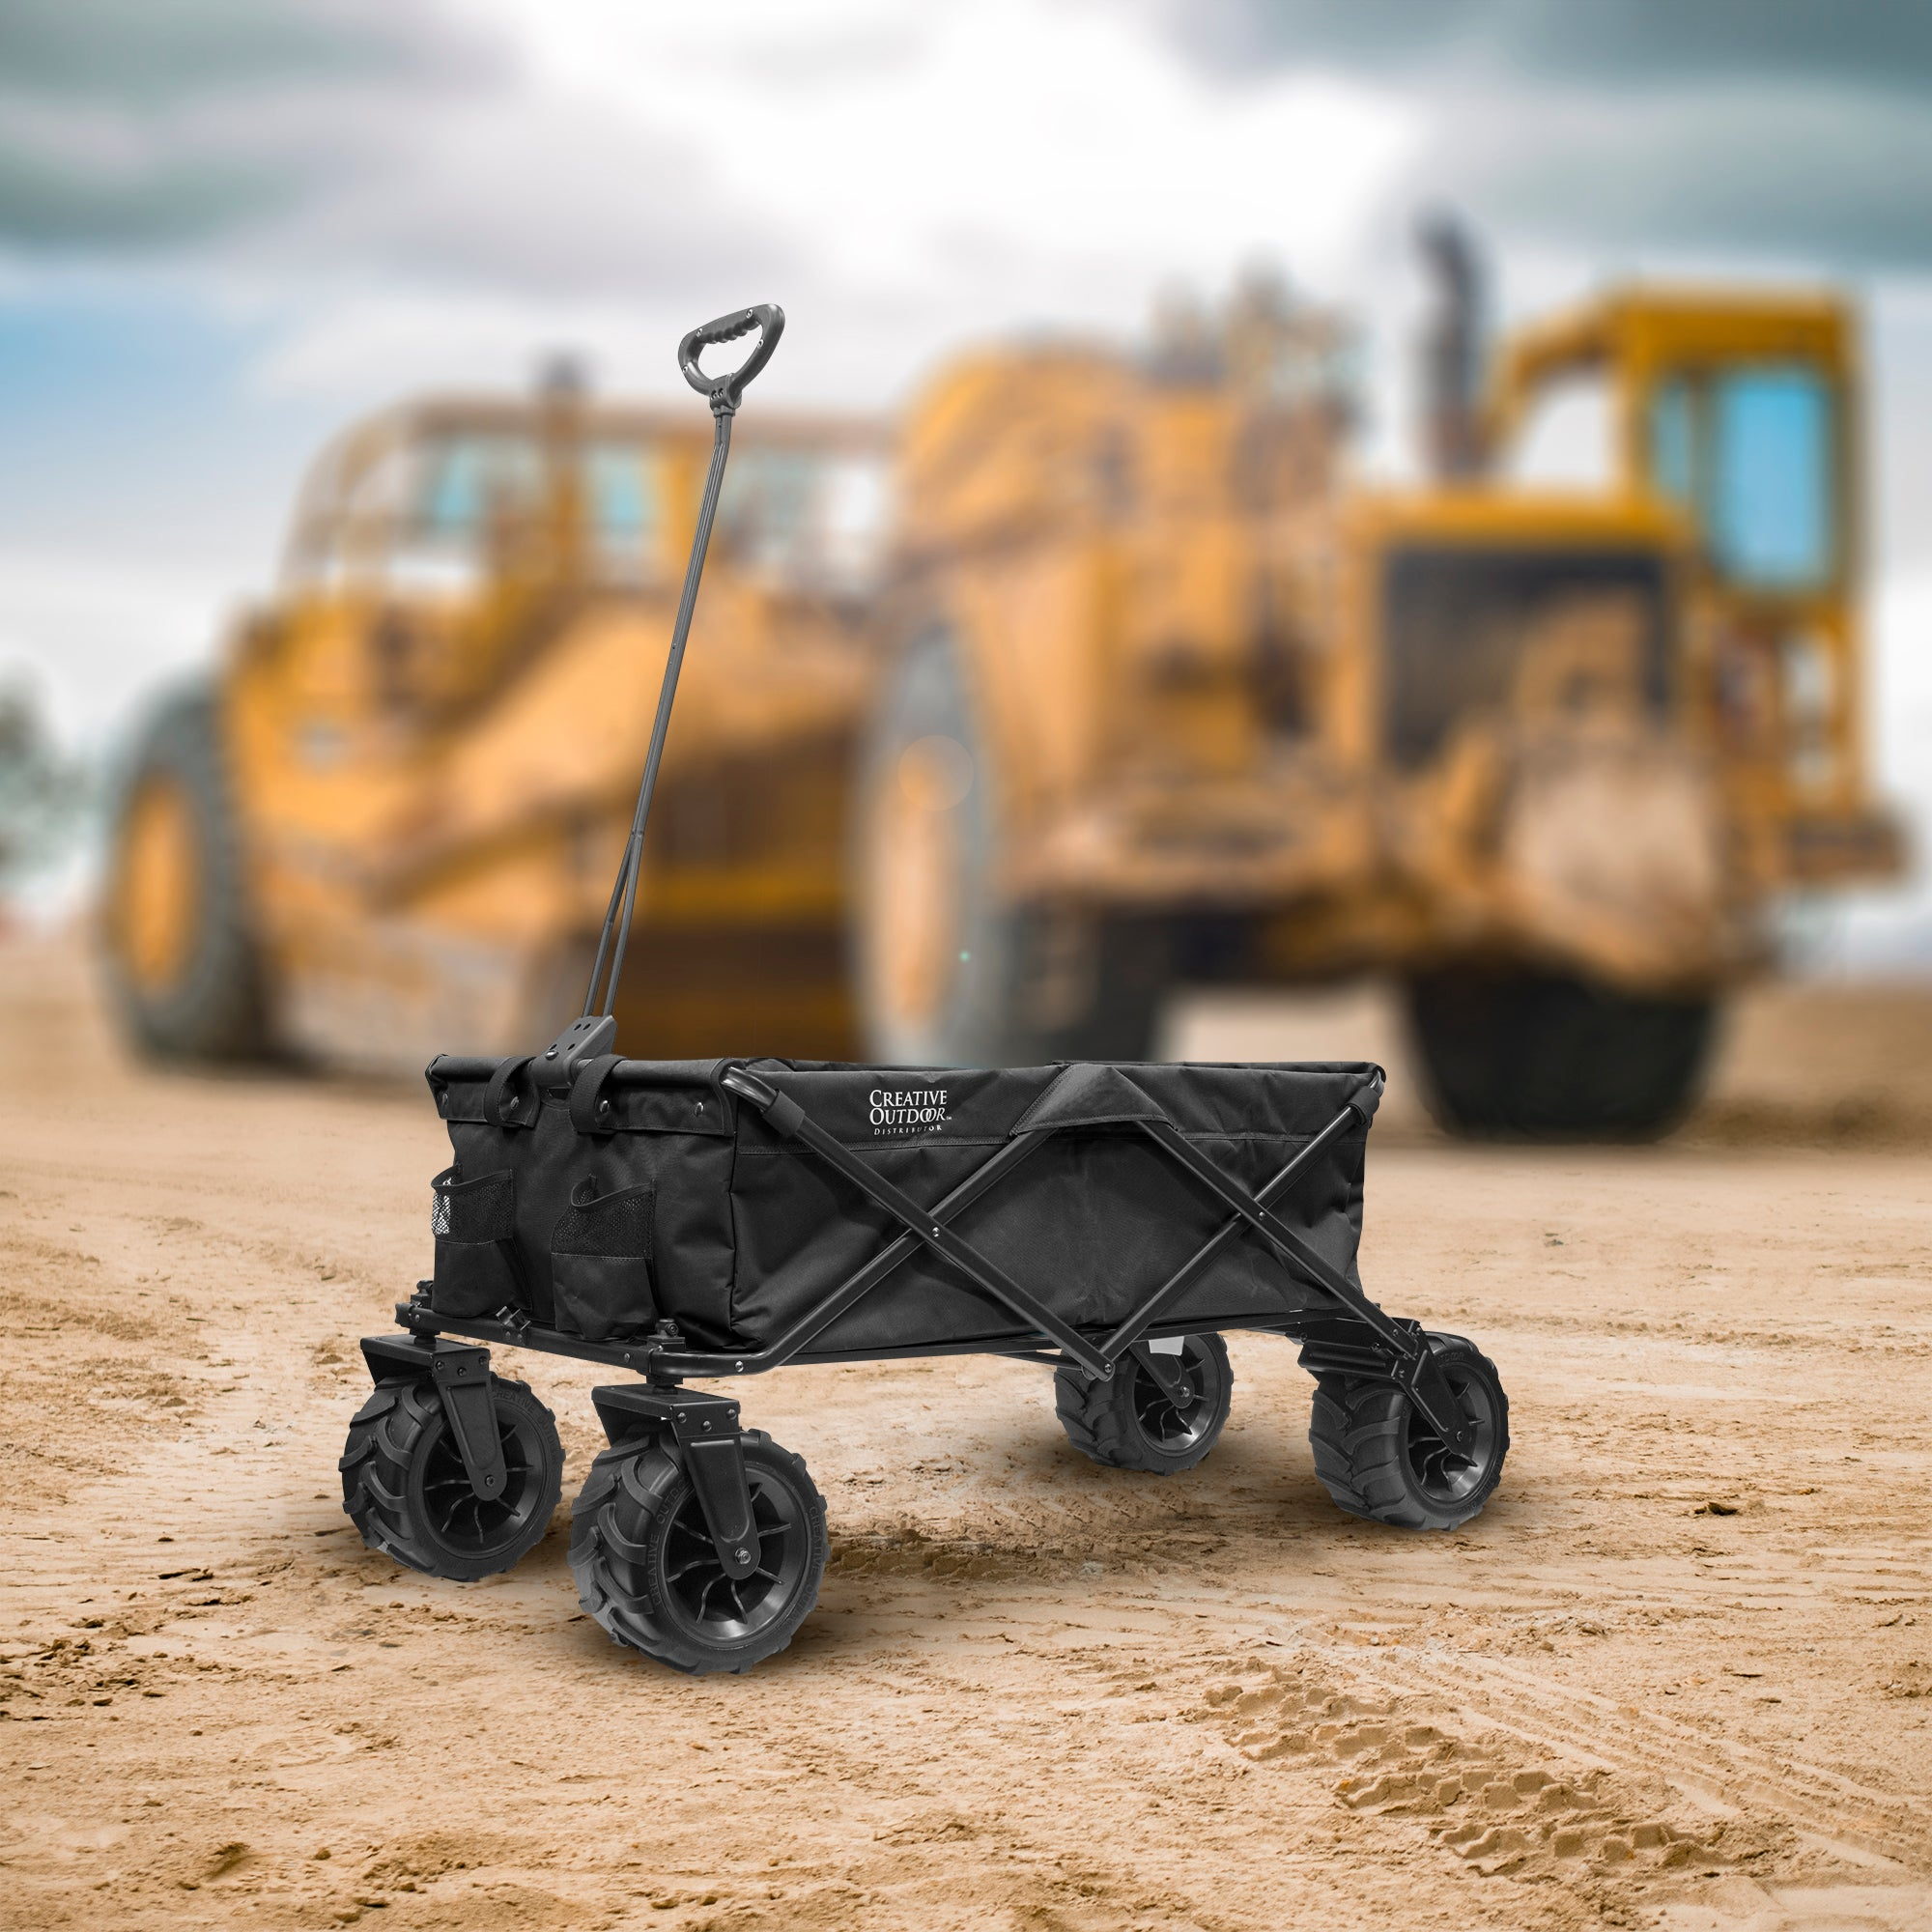 XXXL Monster Folding Wagon Black Lifestyle